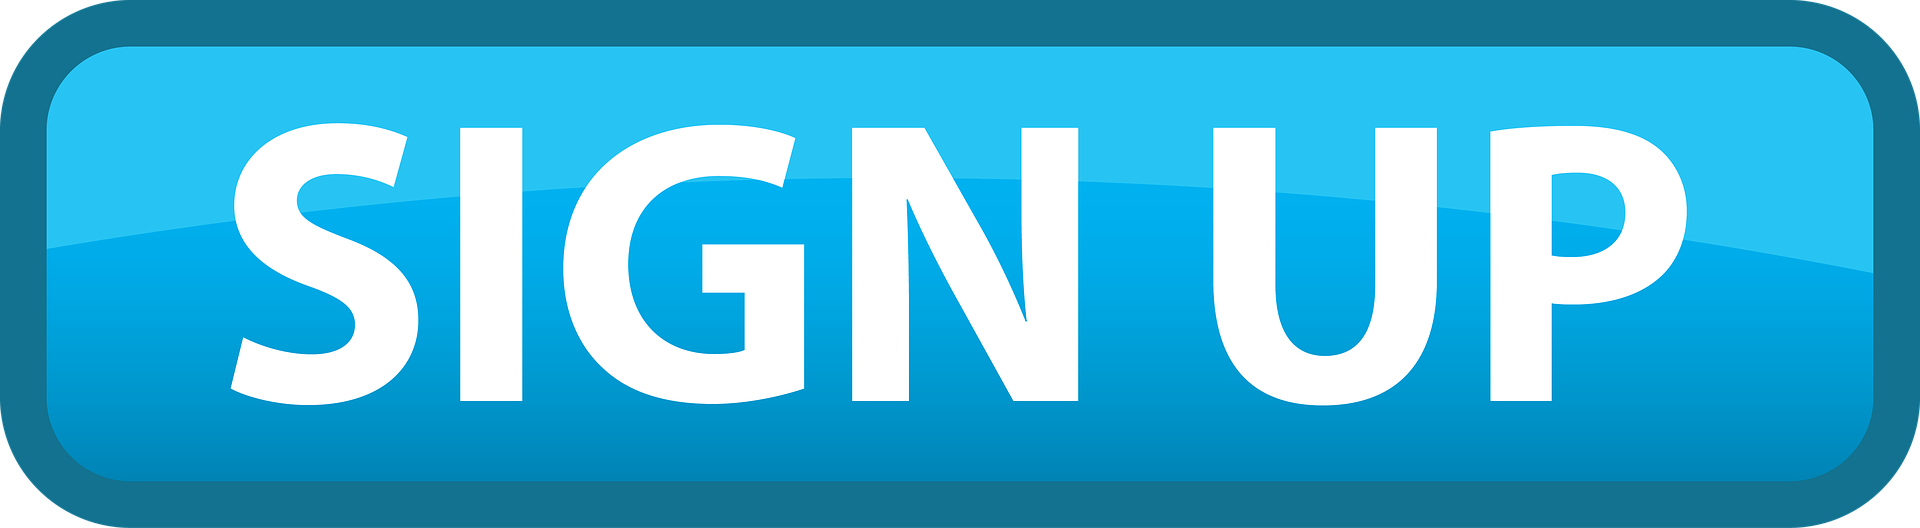 sign-up-1922238_1920.png